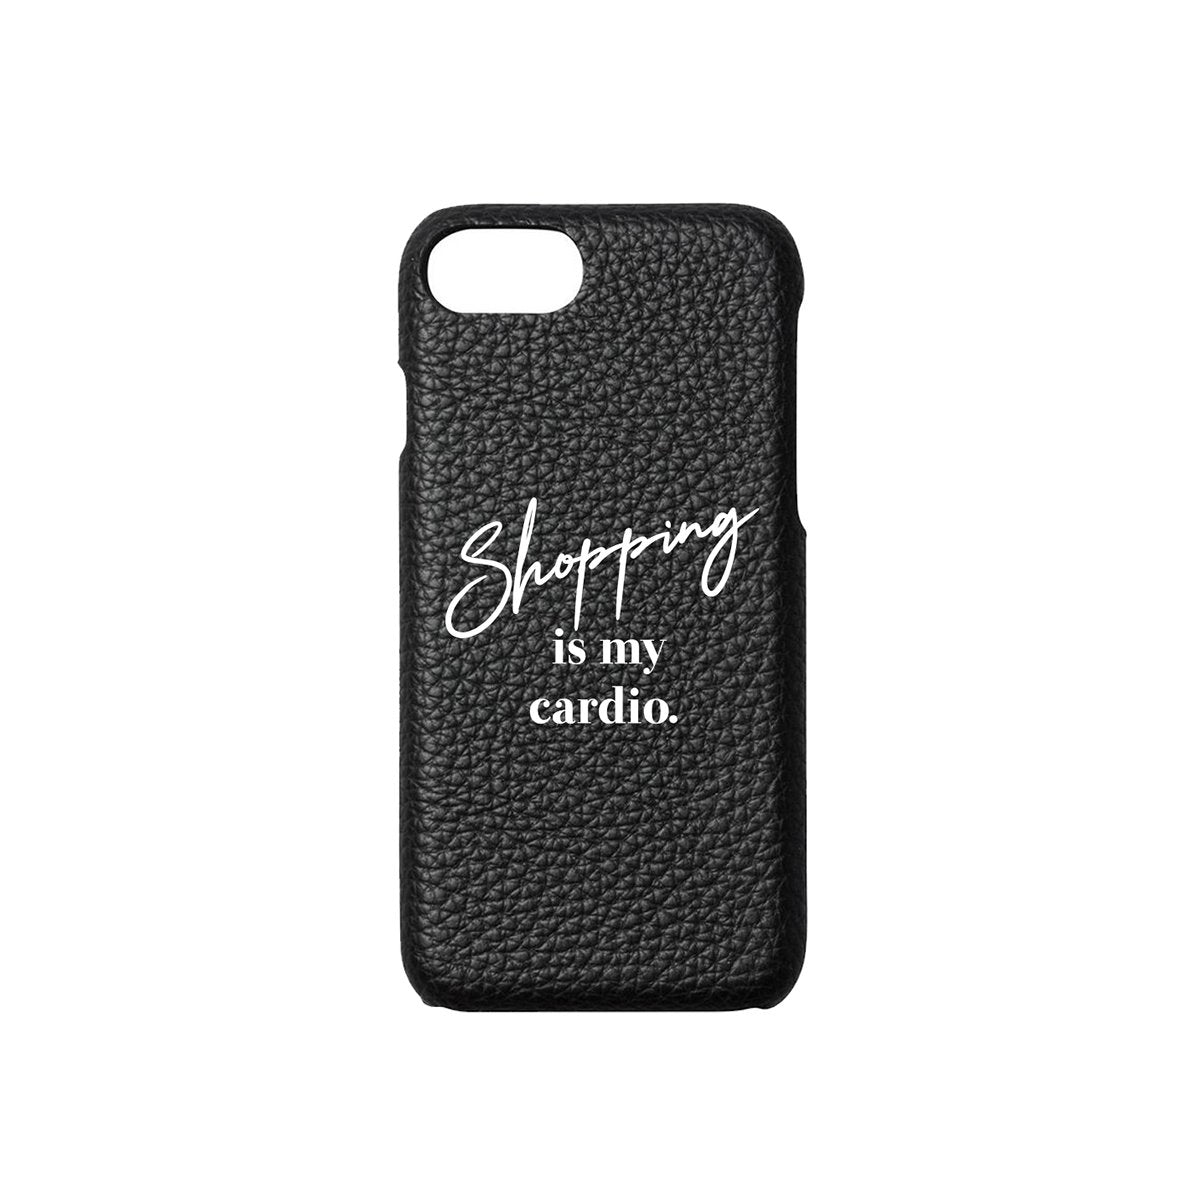 Shopping Is My Cardio Phone Case